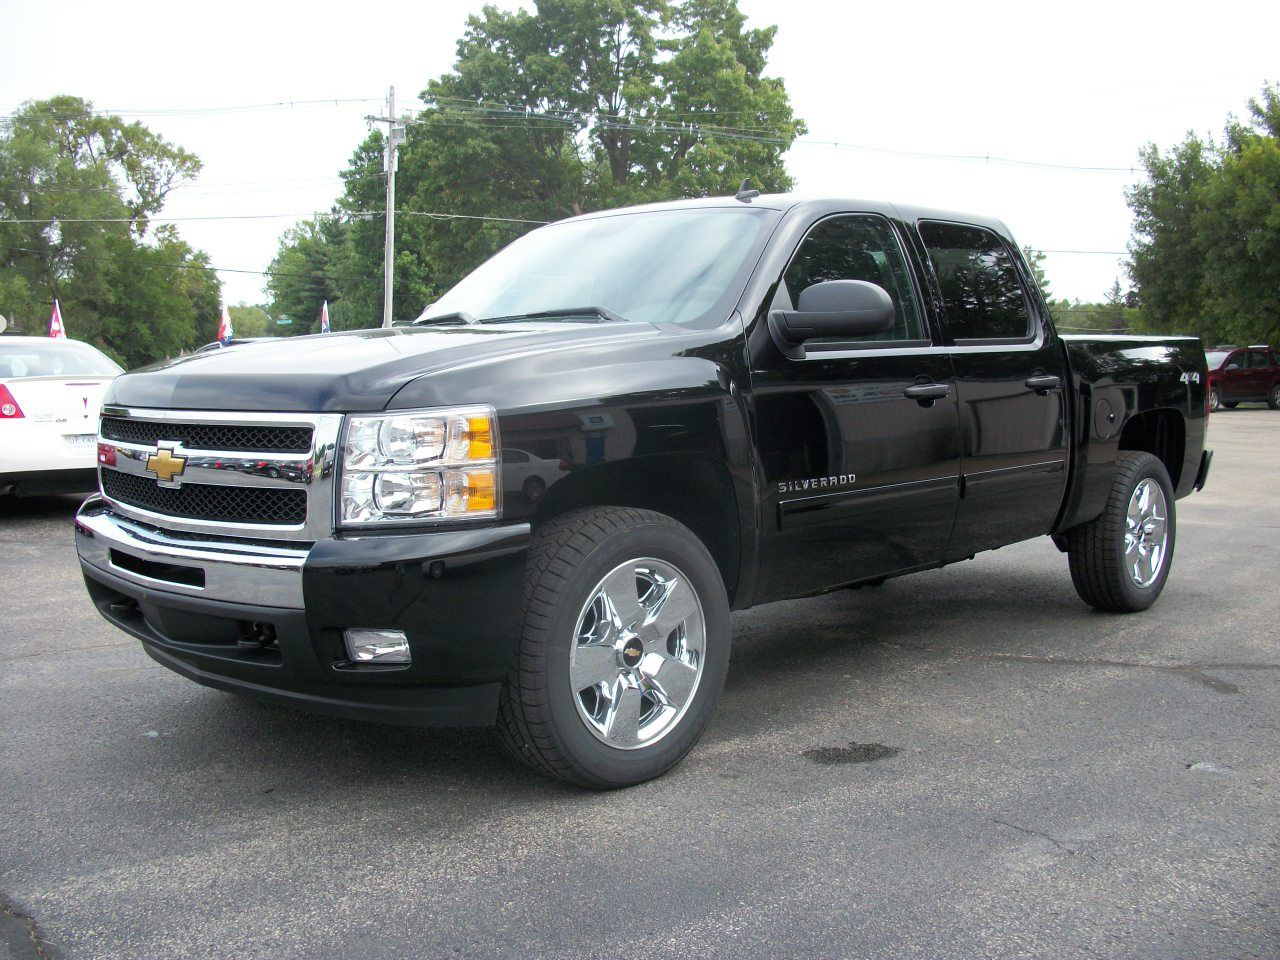 Truck black chevy truck : 2011 Chevy Silverado thats my truck lol | Lifted Trucks drives me ...